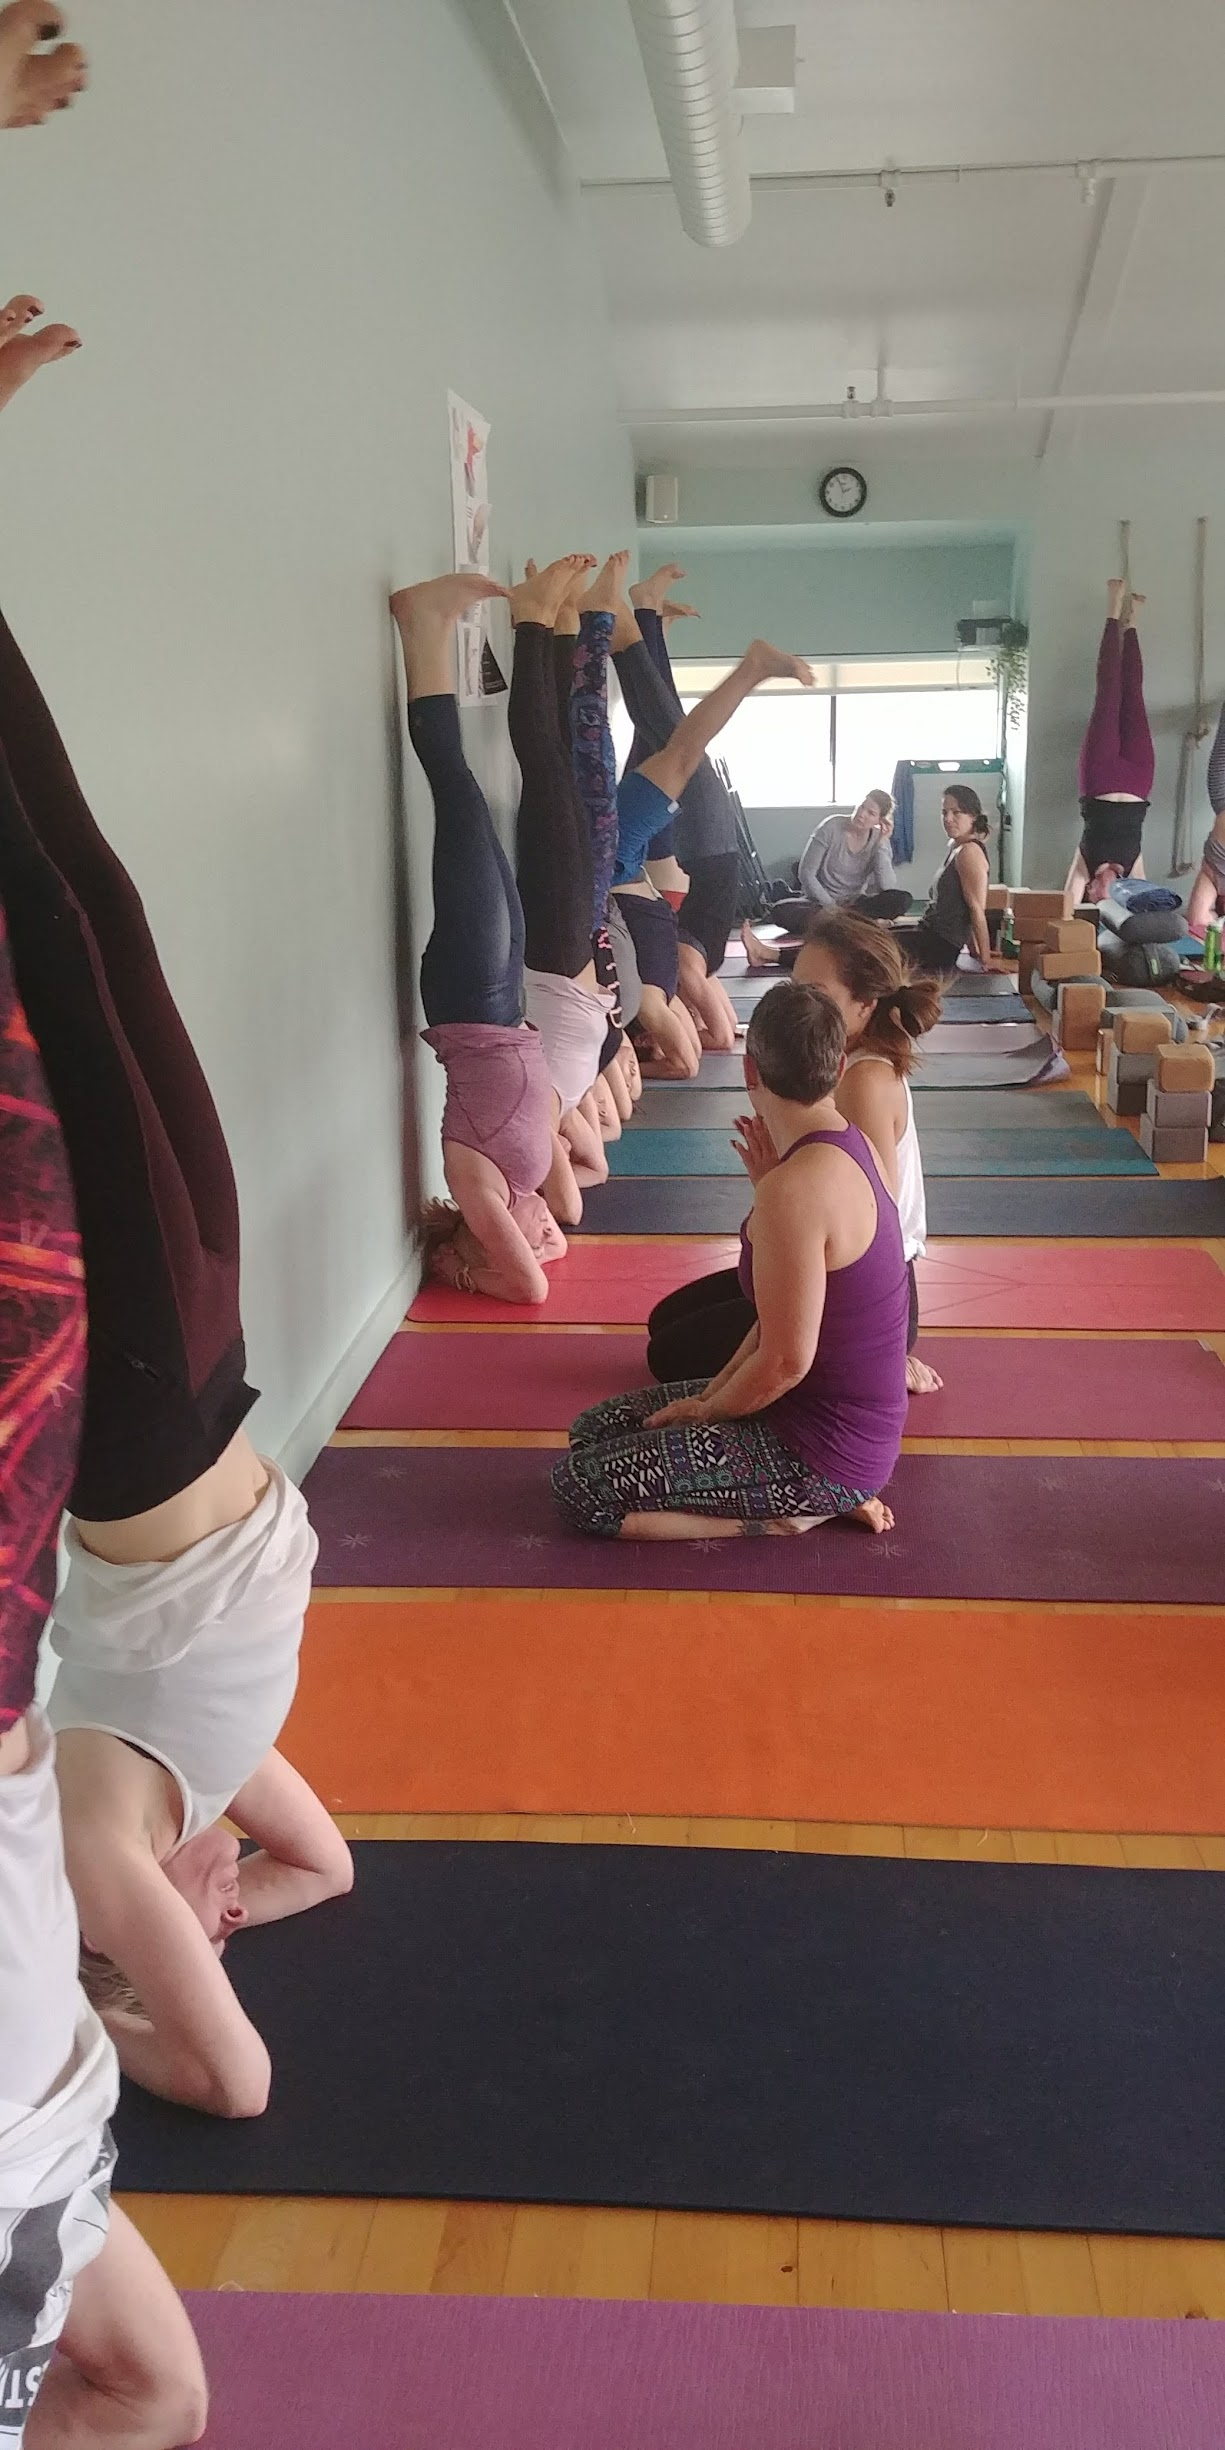 Get in touch with us for all your yoga needs - including wellness goals, private retreats, and workshops.